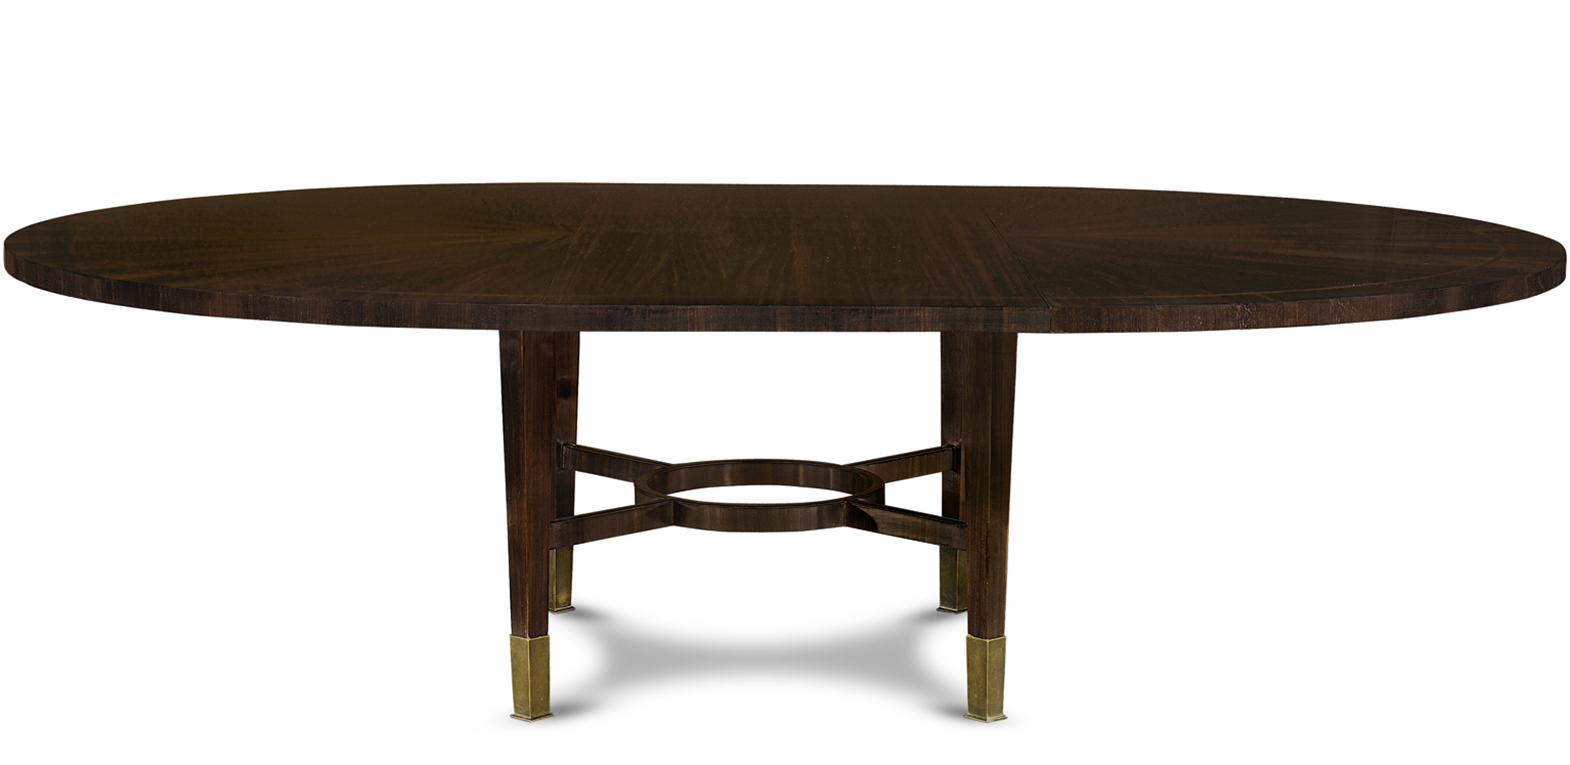 ARGUEIL 180 EXPANDING DINING TABLE